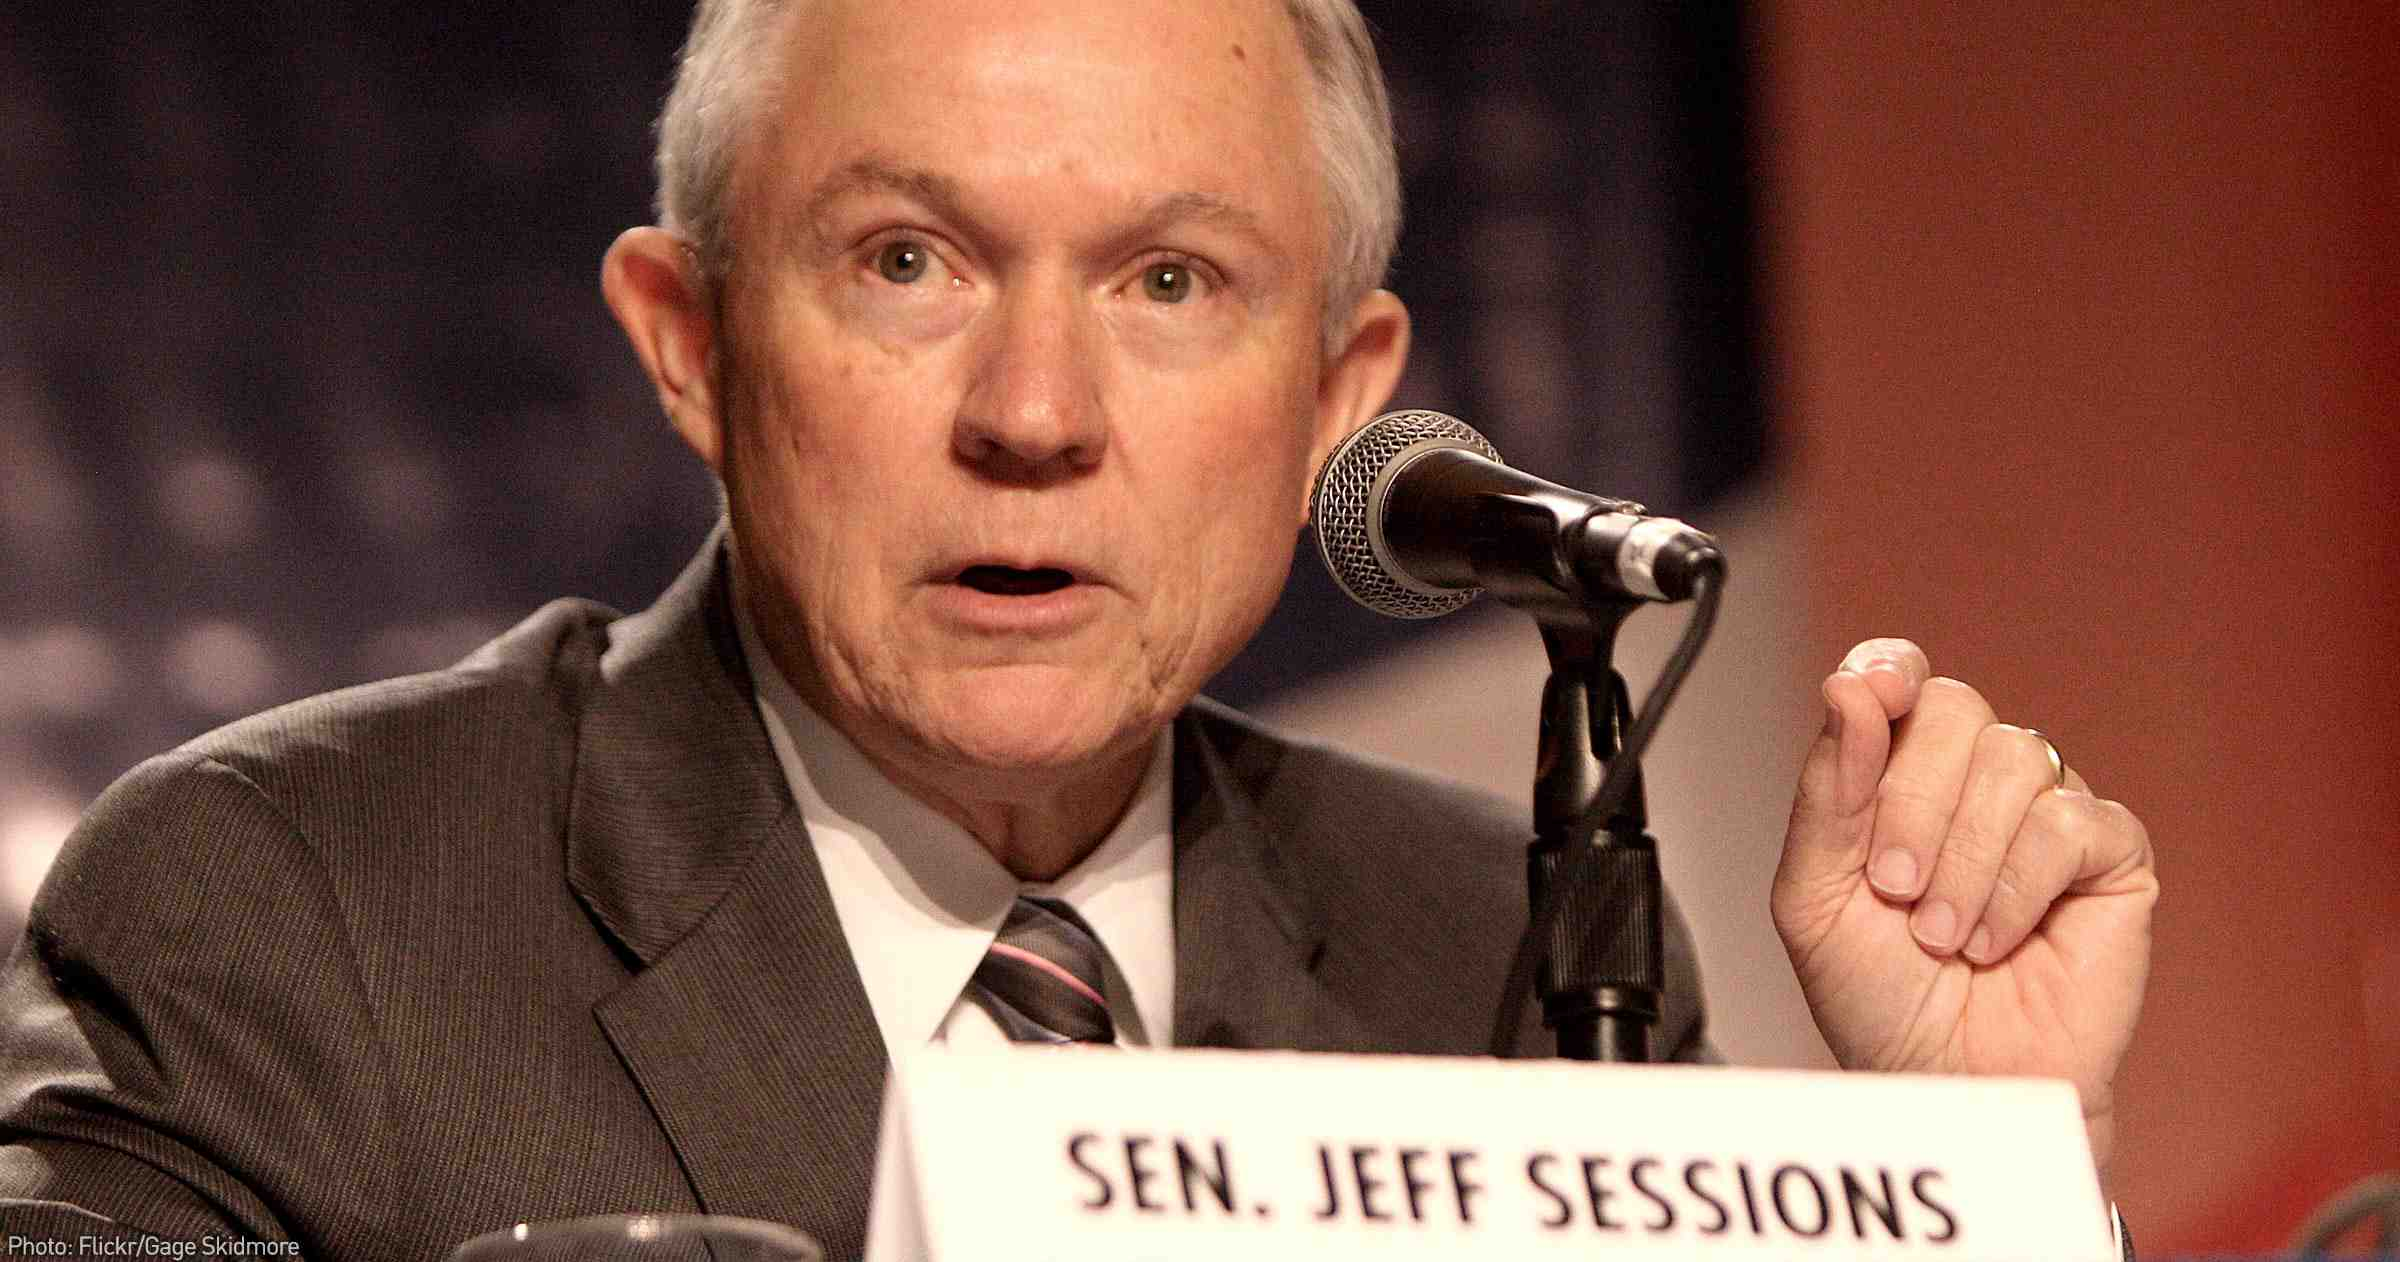 Image result for Breaking News: Jeff Sessions to Stand Trial in Cannabis De-Scheduling